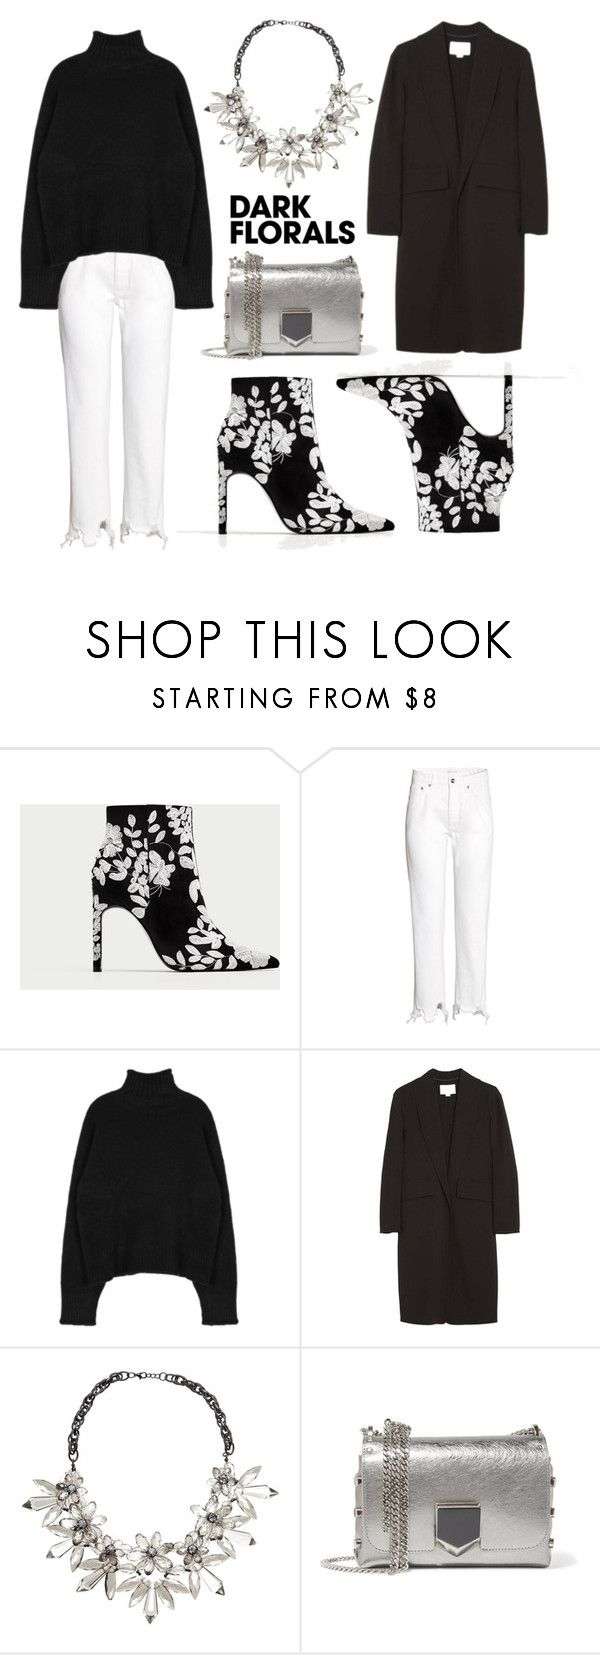 """""""Winter Prints: Dark Florals"""" by eva-jez ❤ liked on Polyvore featuring H&M, Alexander Wang, John Lewis, Jimmy Choo and darkflorals"""